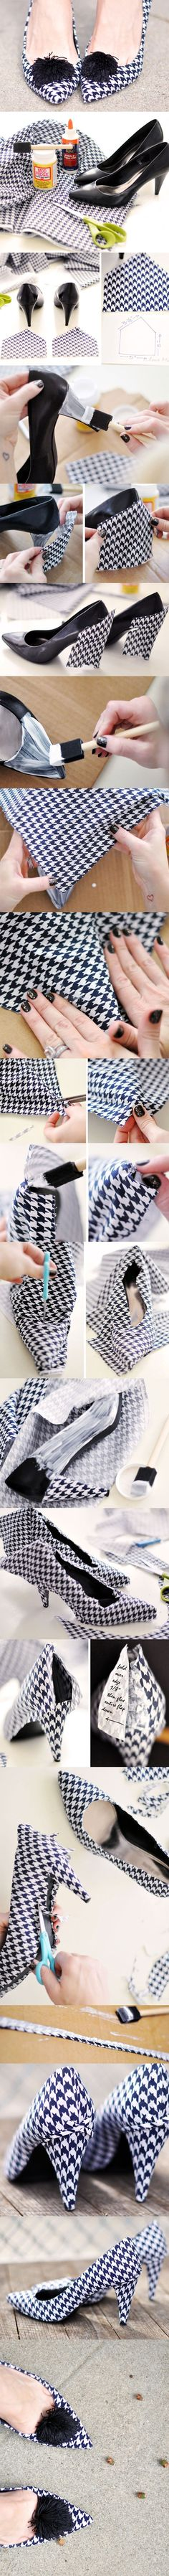 How to turn any pair of shoes into Houndstooth Print